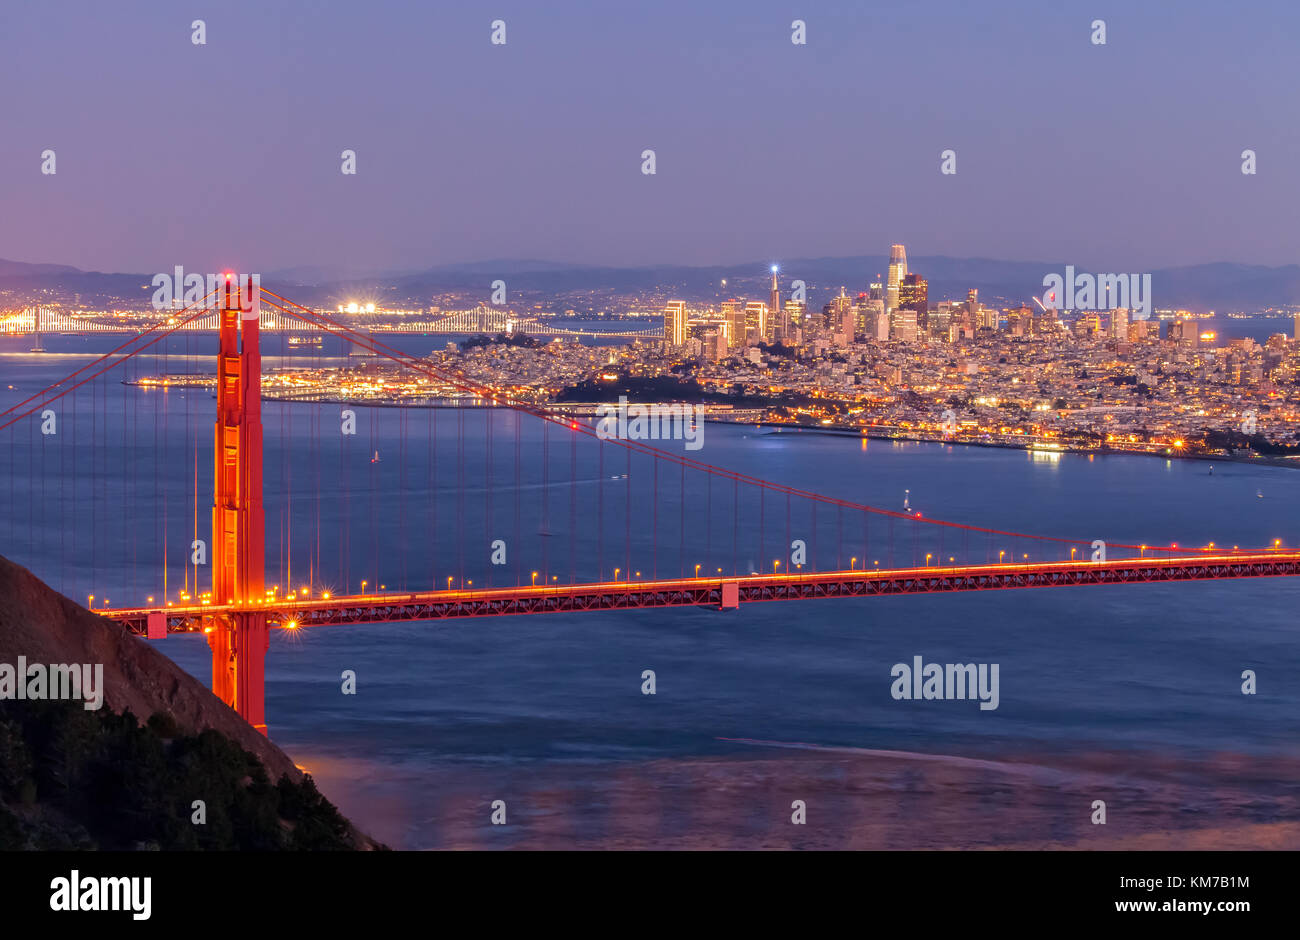 Golden Gate Bridge et de la ville de San Francisco s'allumer à la tombée de la nuit, en Californie, Photo Stock